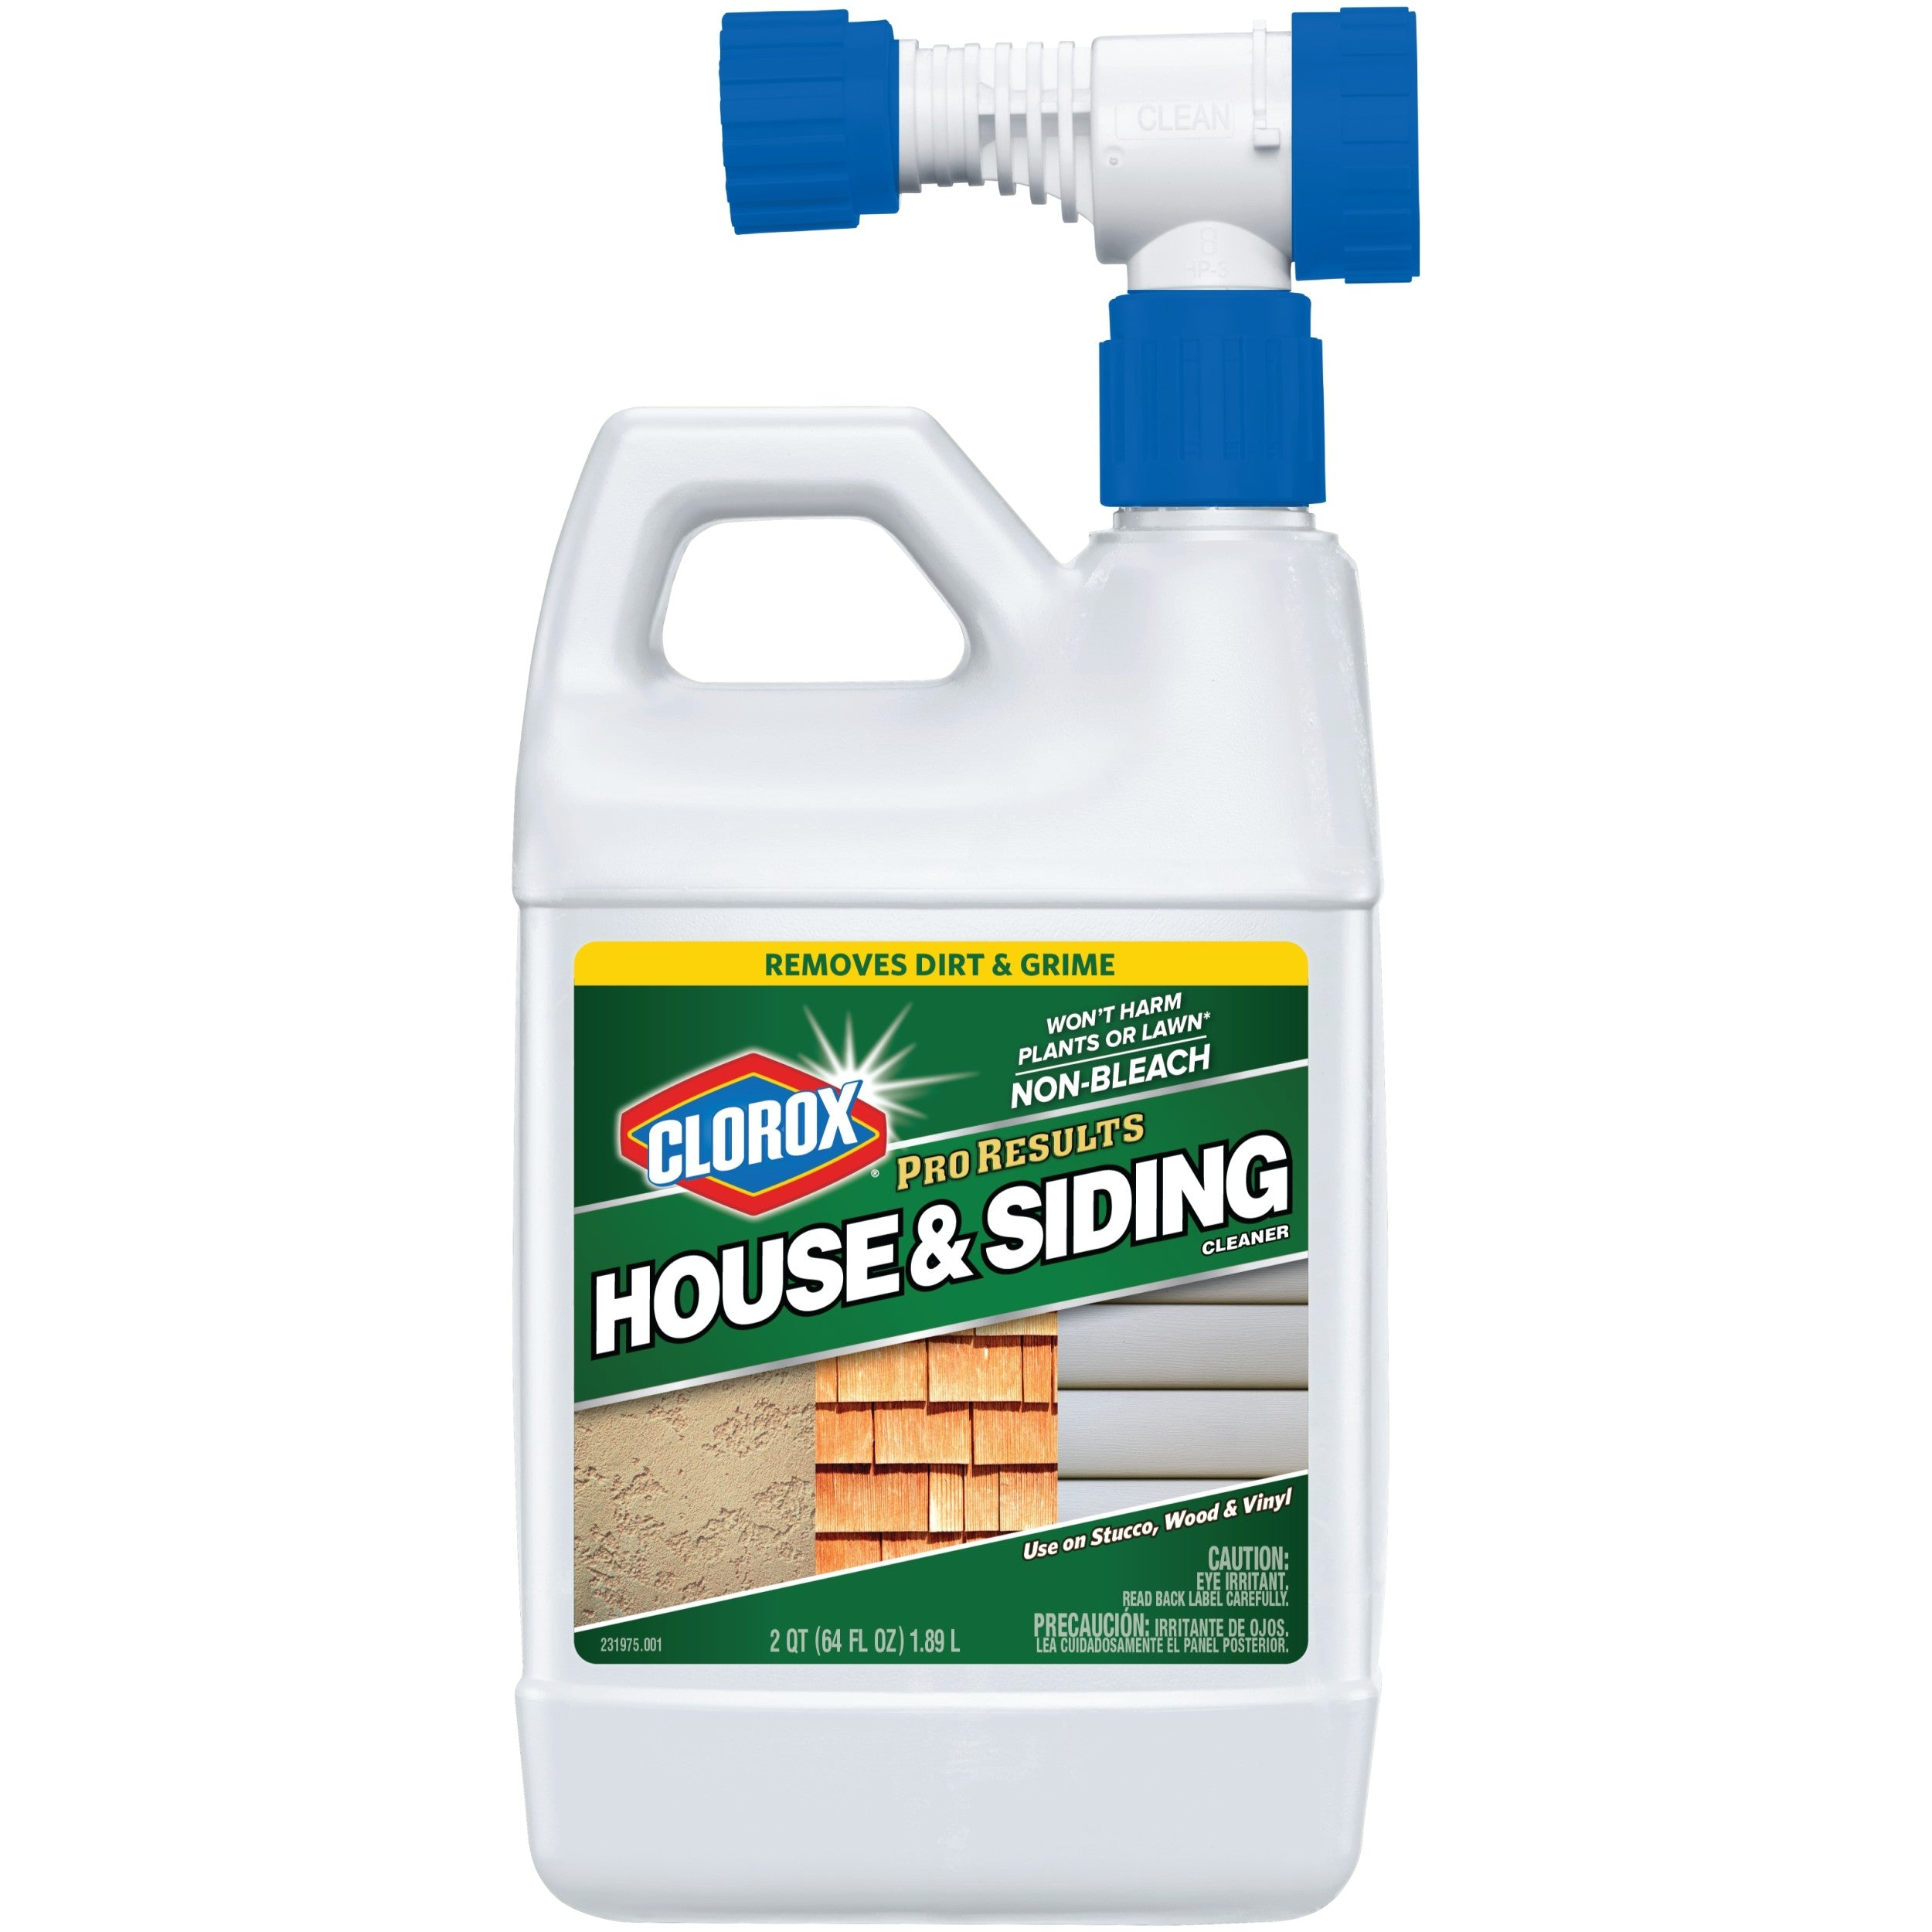 Clorox Pro Results House & Siding Cleaner, Bleach Free Outdoor Cleaner, 64 oz Bottle - FLJ CORPORATIONS